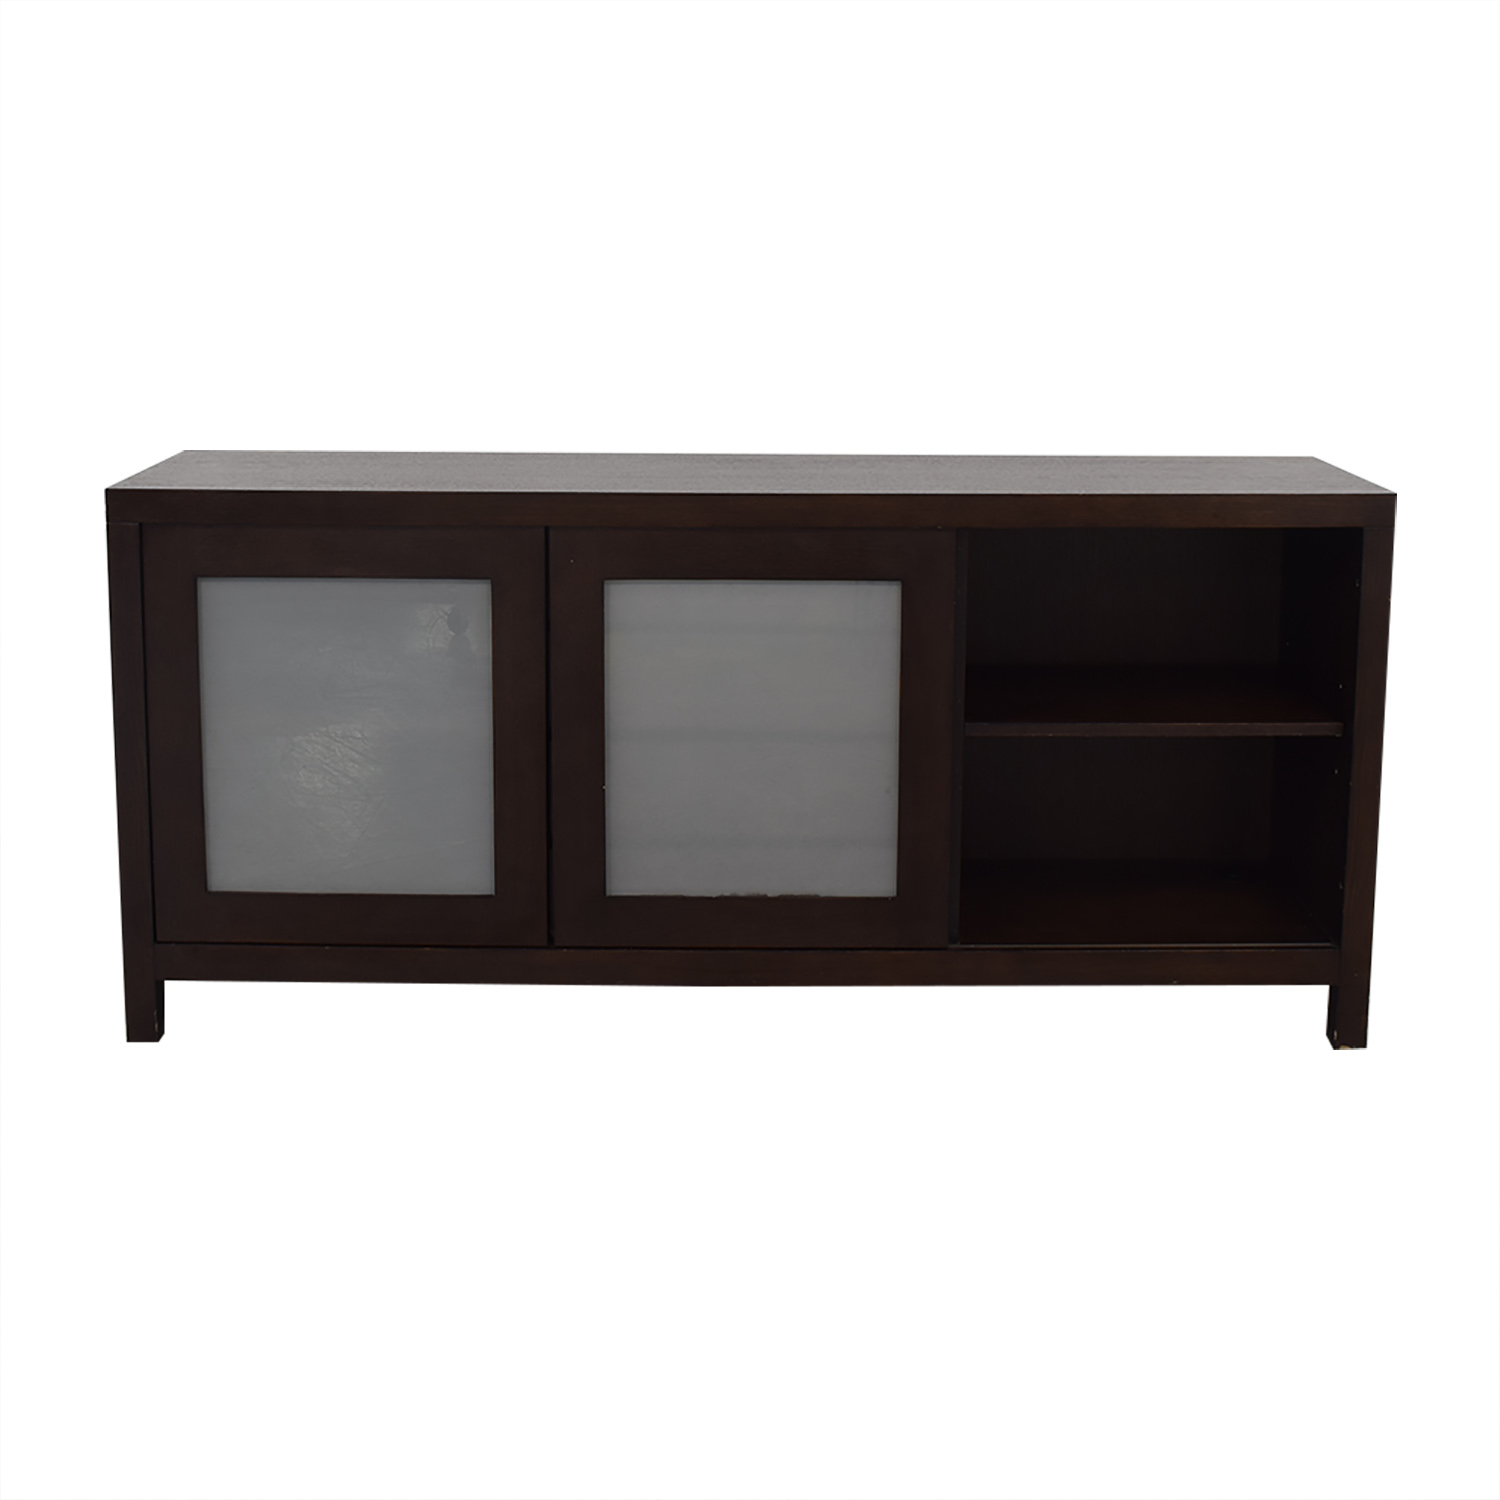 buy Crate & Barrel Sideboard with Cabinets Crate & Barrel